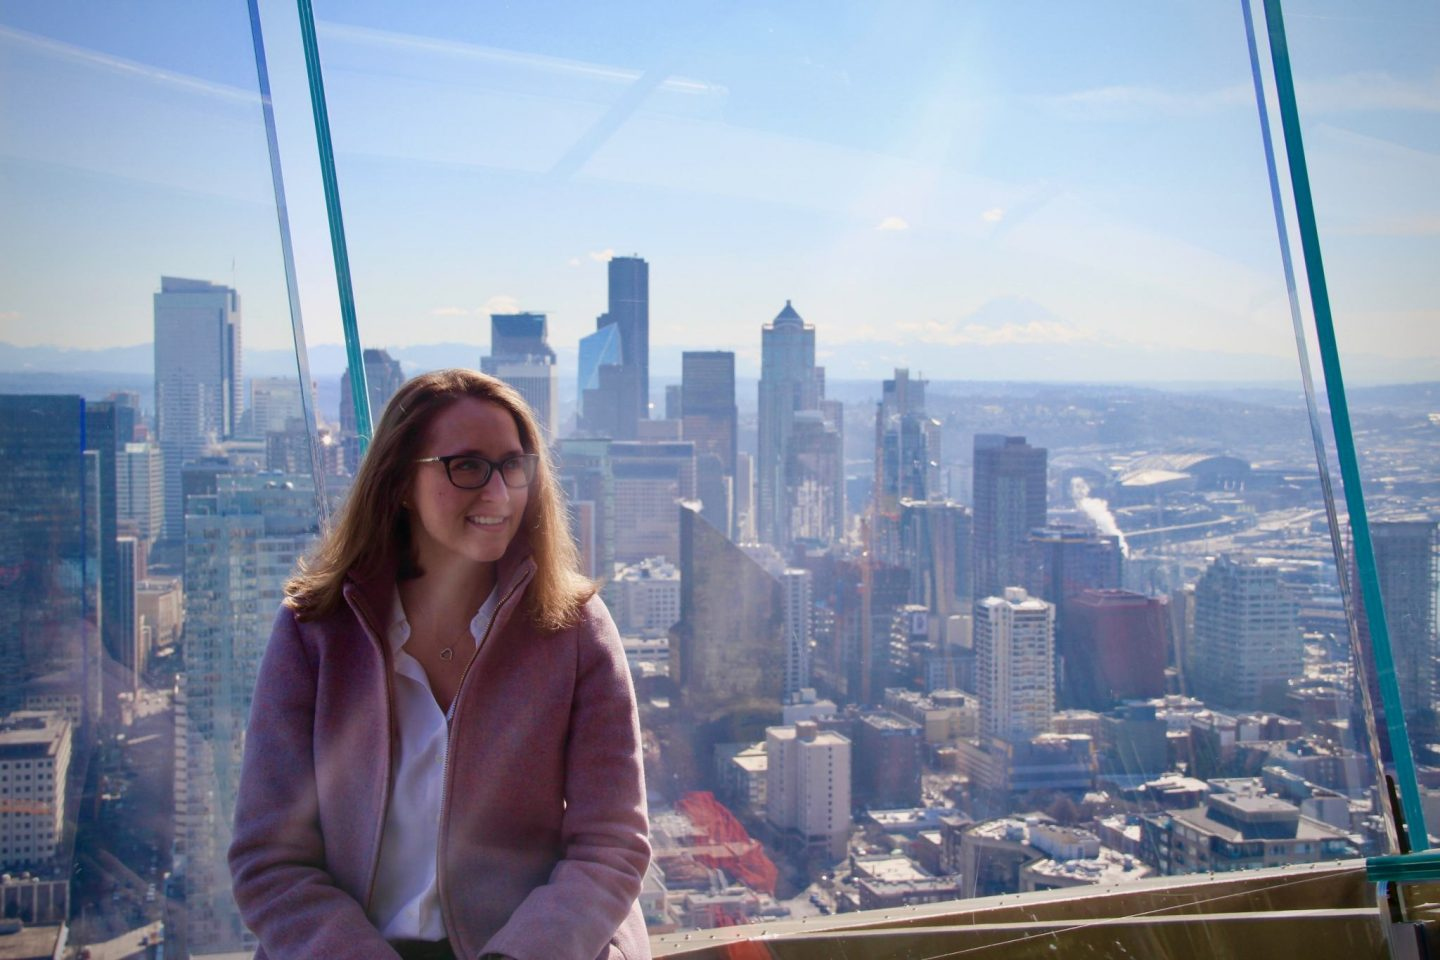 Bucketlist Adventures | #3 Seattle Space Needle